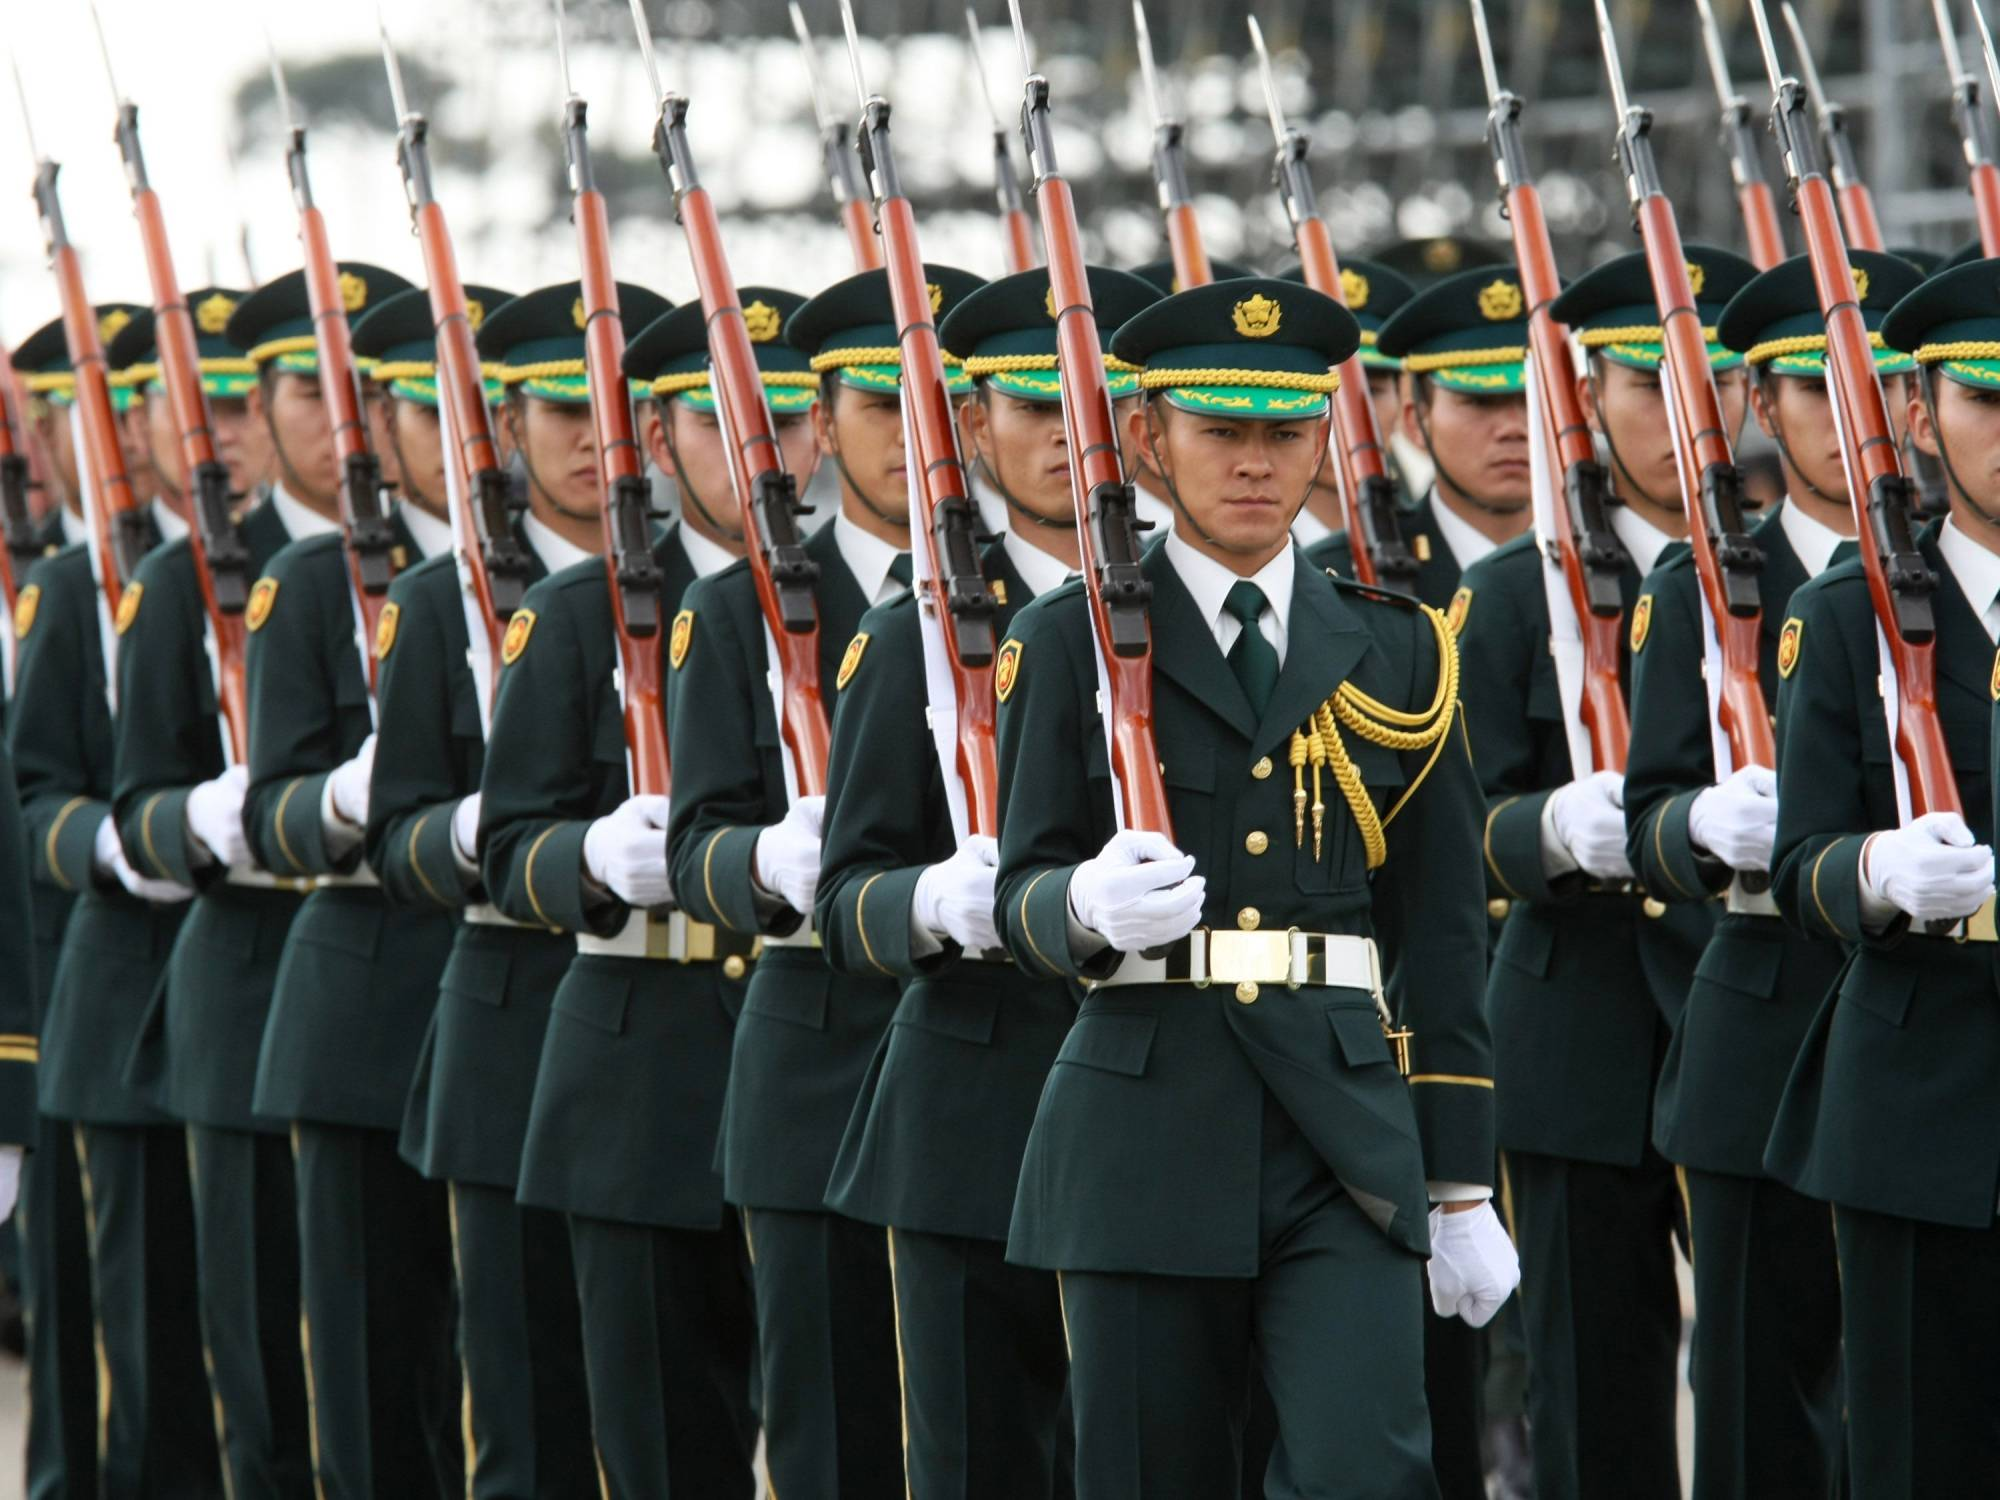 Japan has been trying to strengthen the Self-Defense Forces' abilities to defend remote islands in the face of increased maritime actions by China, especially around the Senkaku Islands. | BLOOMBERG